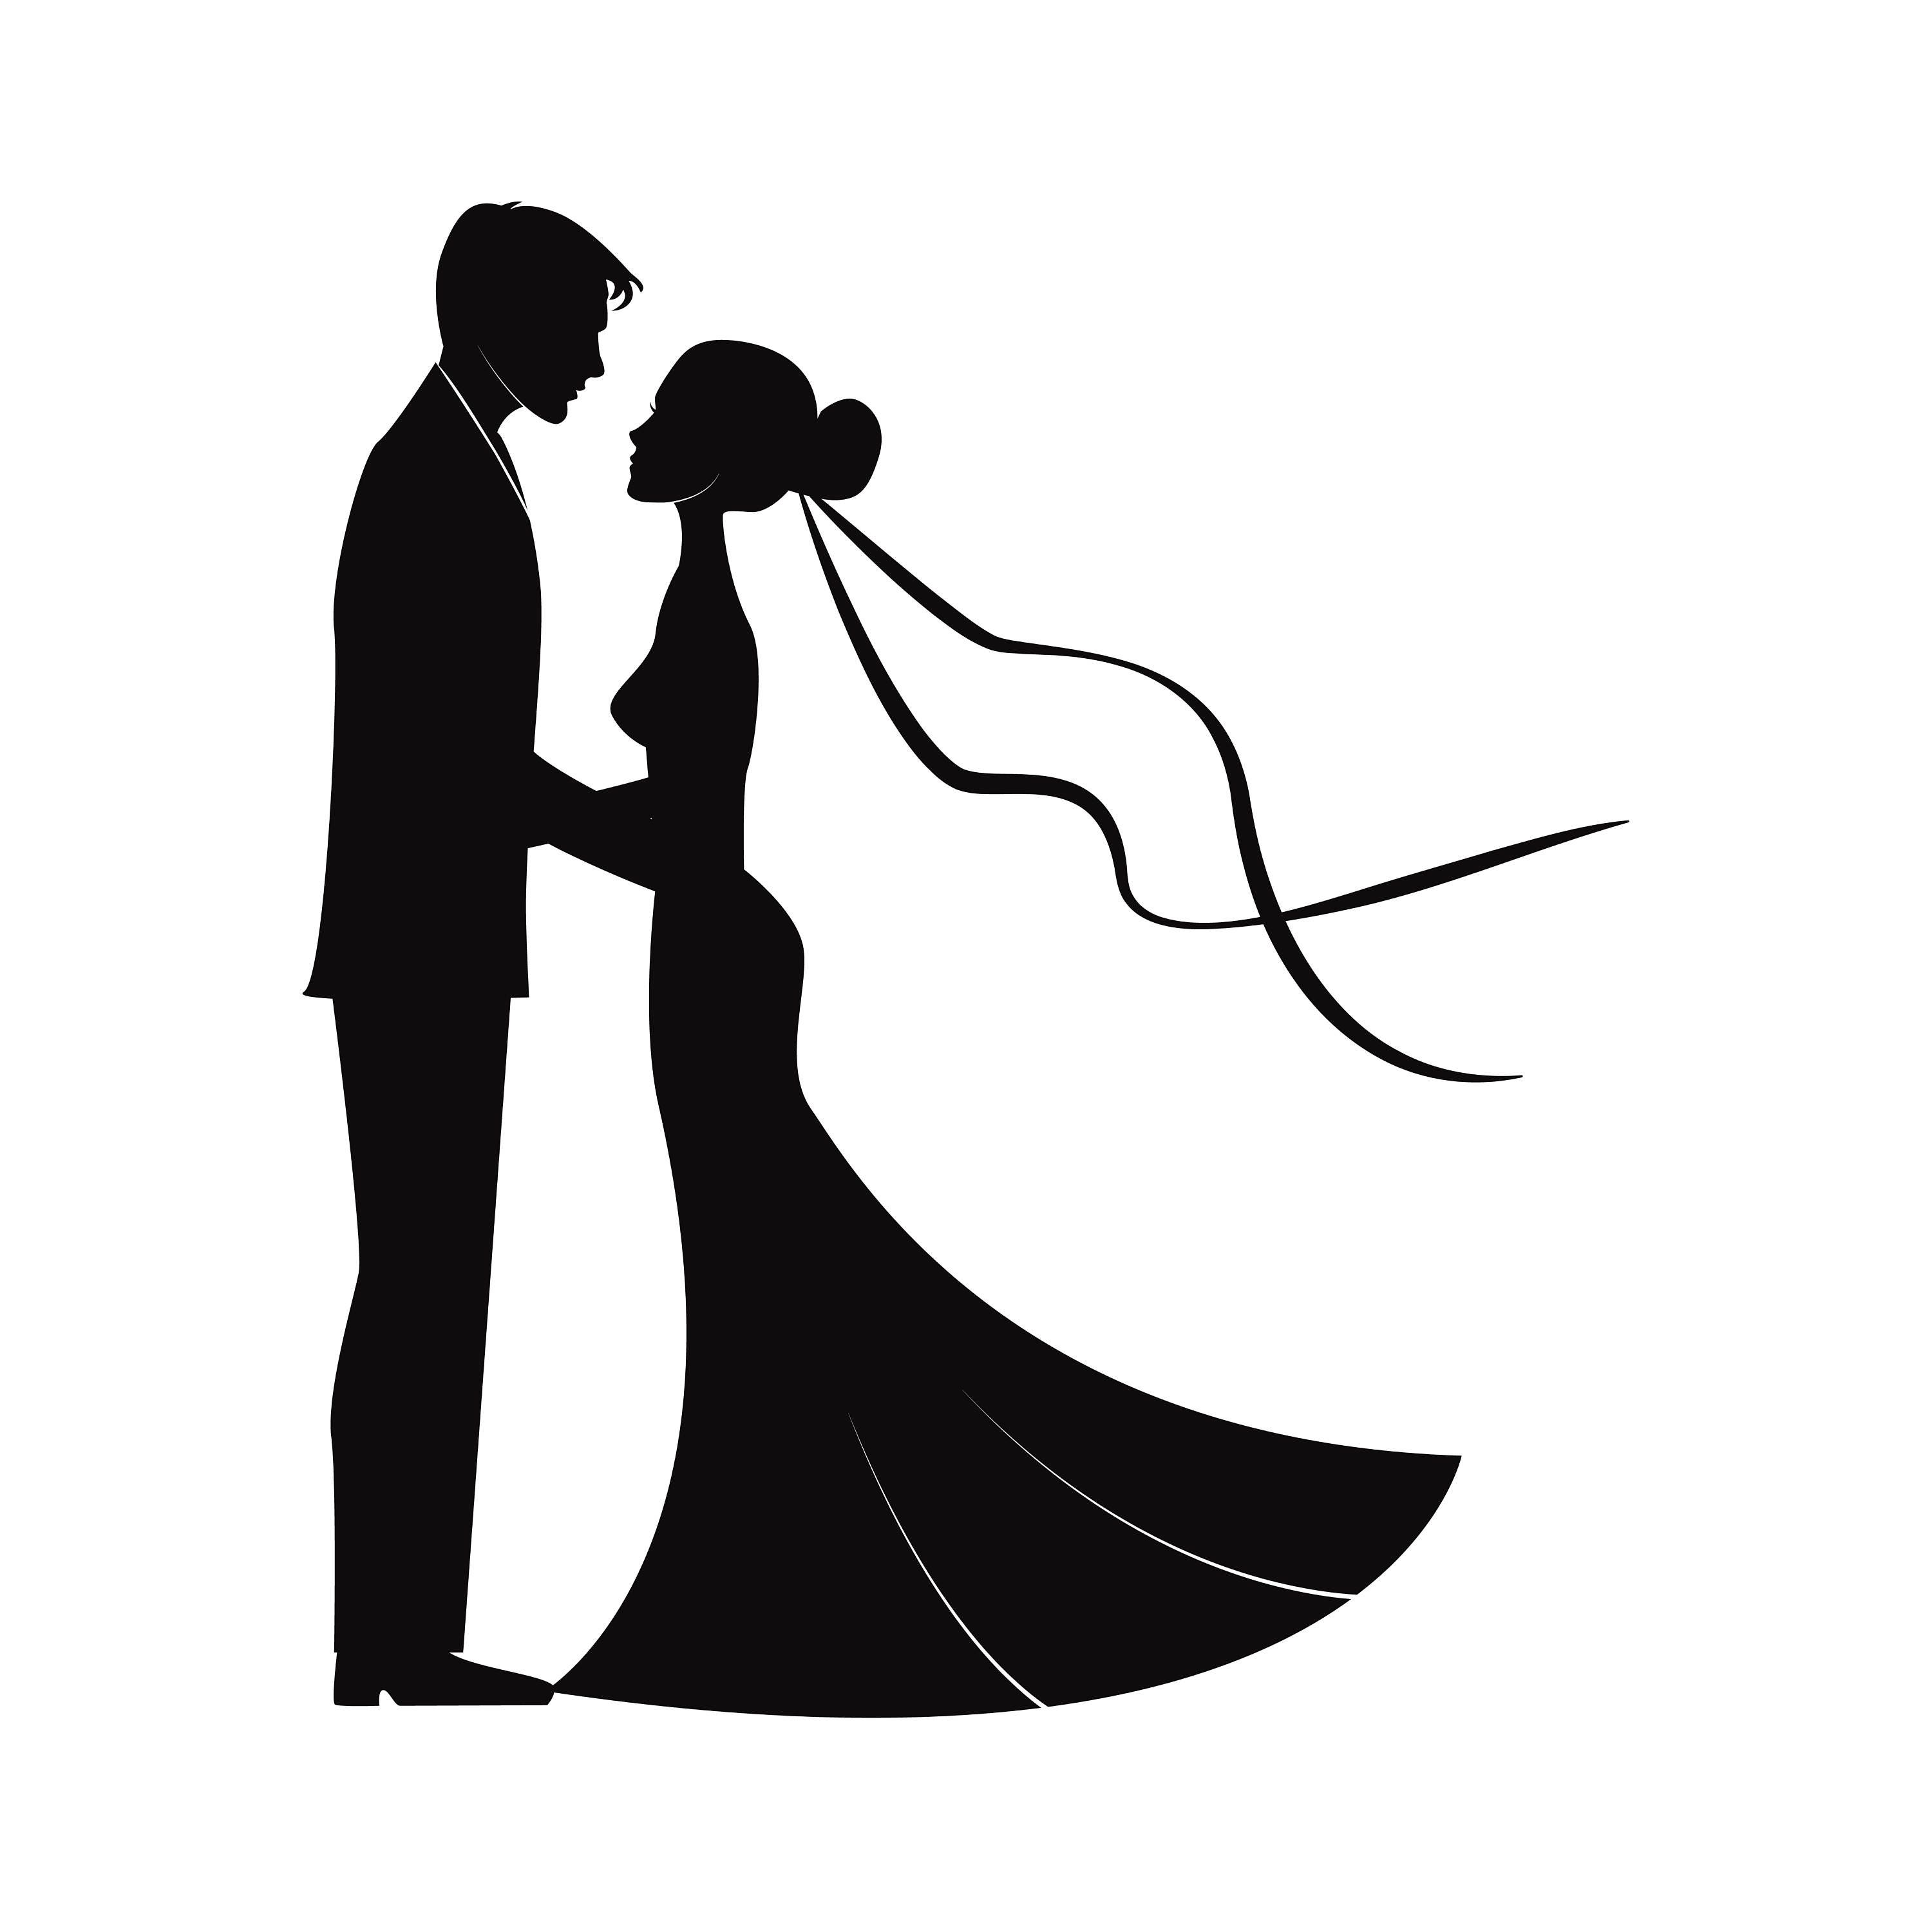 Wedding Couples In Silhouette SVG Marriage Bride And Groom